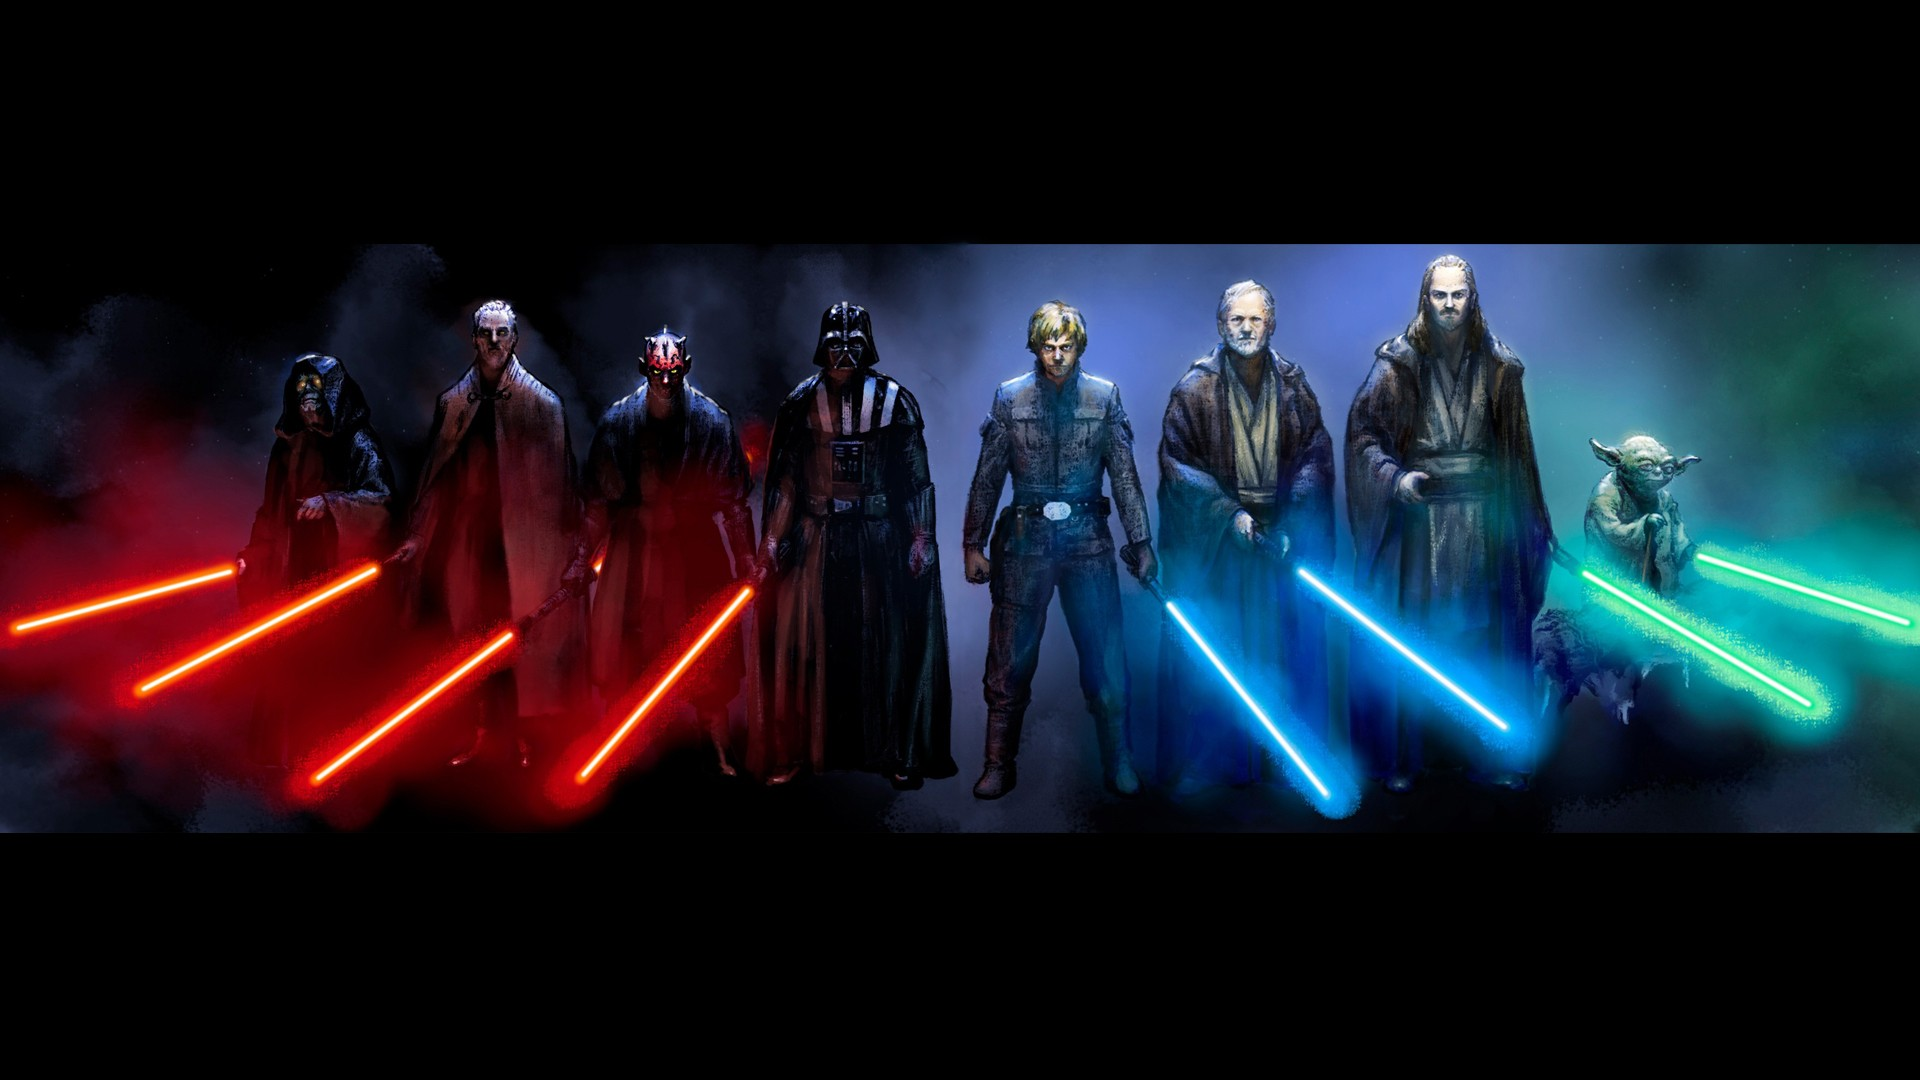 netstar wars sith and jedi wallpapers 36095 1920x1080jpg 1920x1080